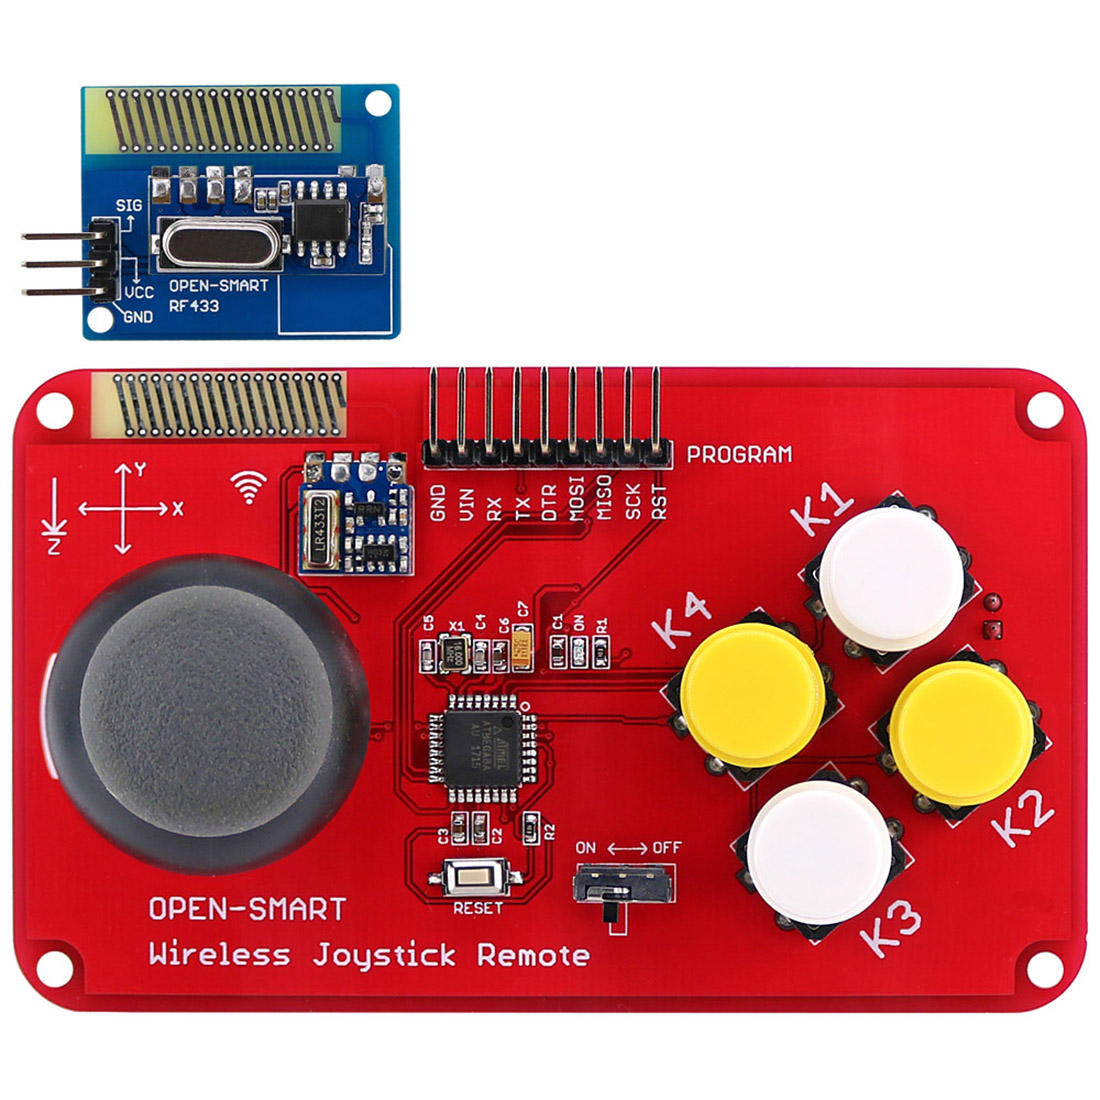 New Hot PS2 Joystick Keypad RF 433MHz Wireless Joystick Game Controller Module Kit For Smart Car/4-Axis Aircraft